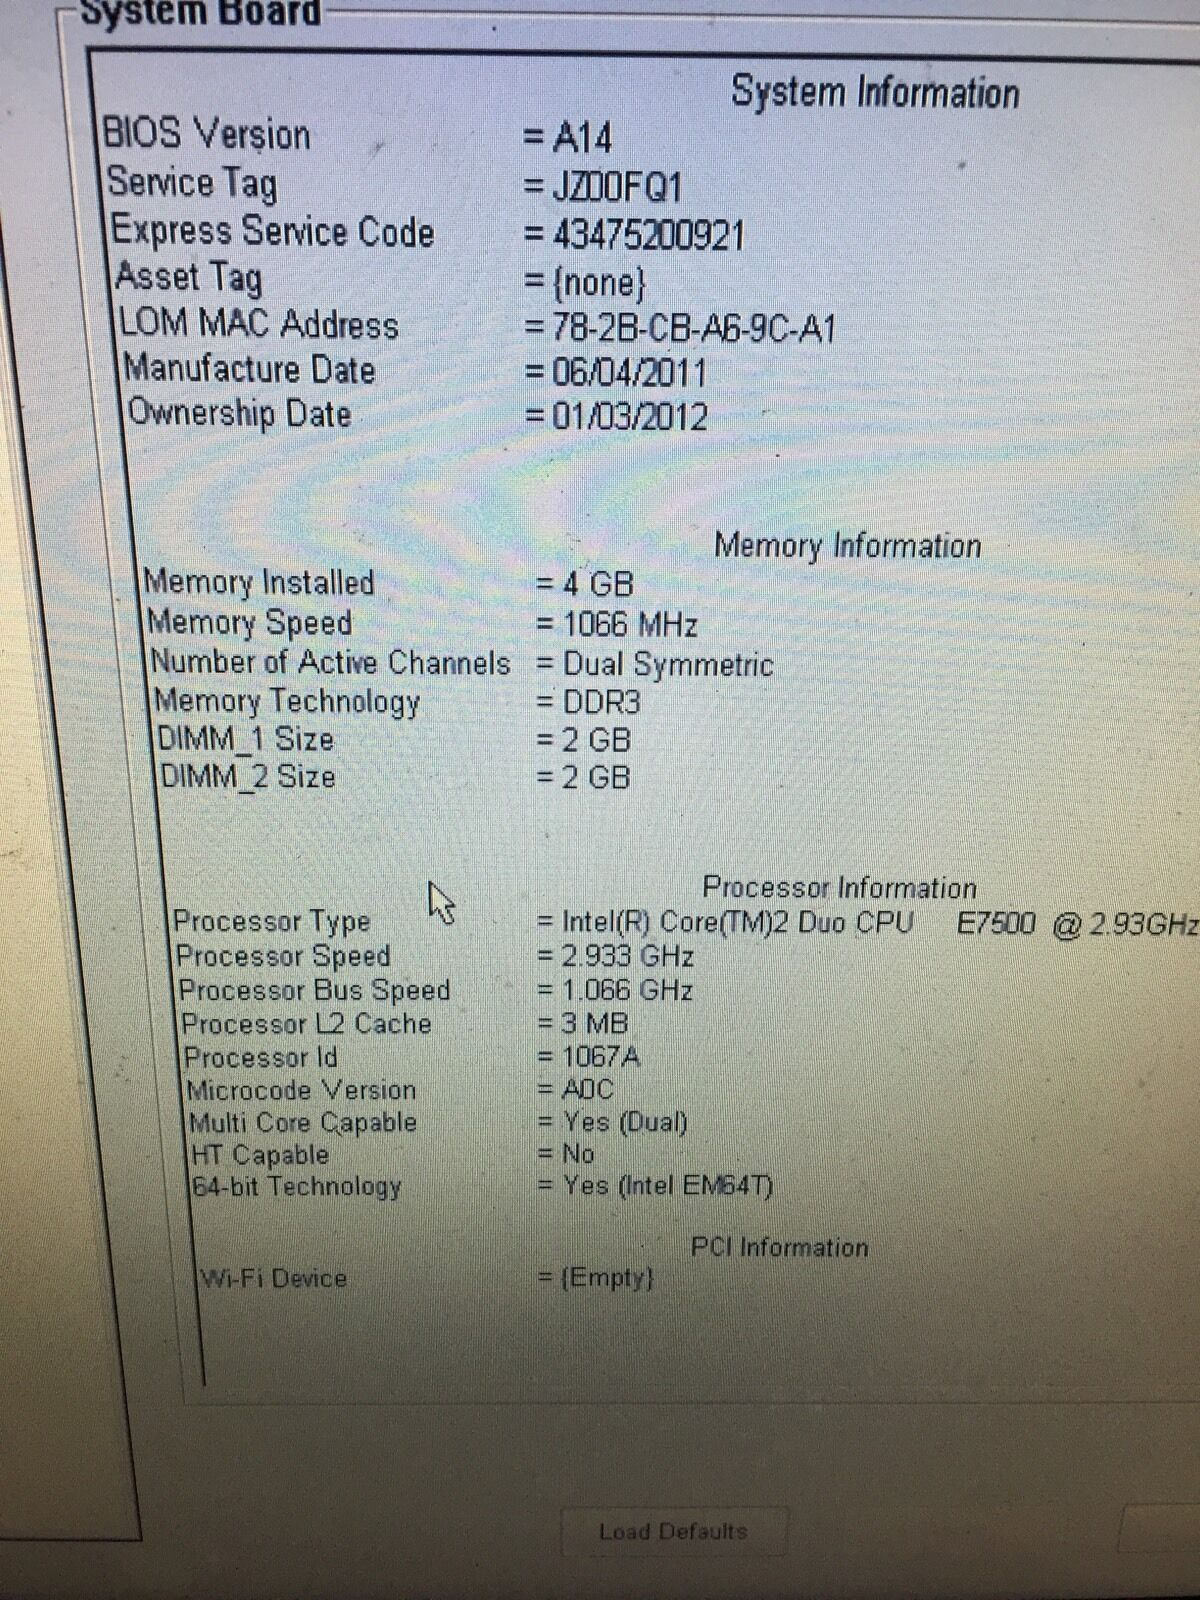 Intel Core 2 Duo 64 Bit Capable Karmashares Llc Leveraging Prosesor C2d E7500 Of 4 Dell Optiplex 780 293ghz 40gb No